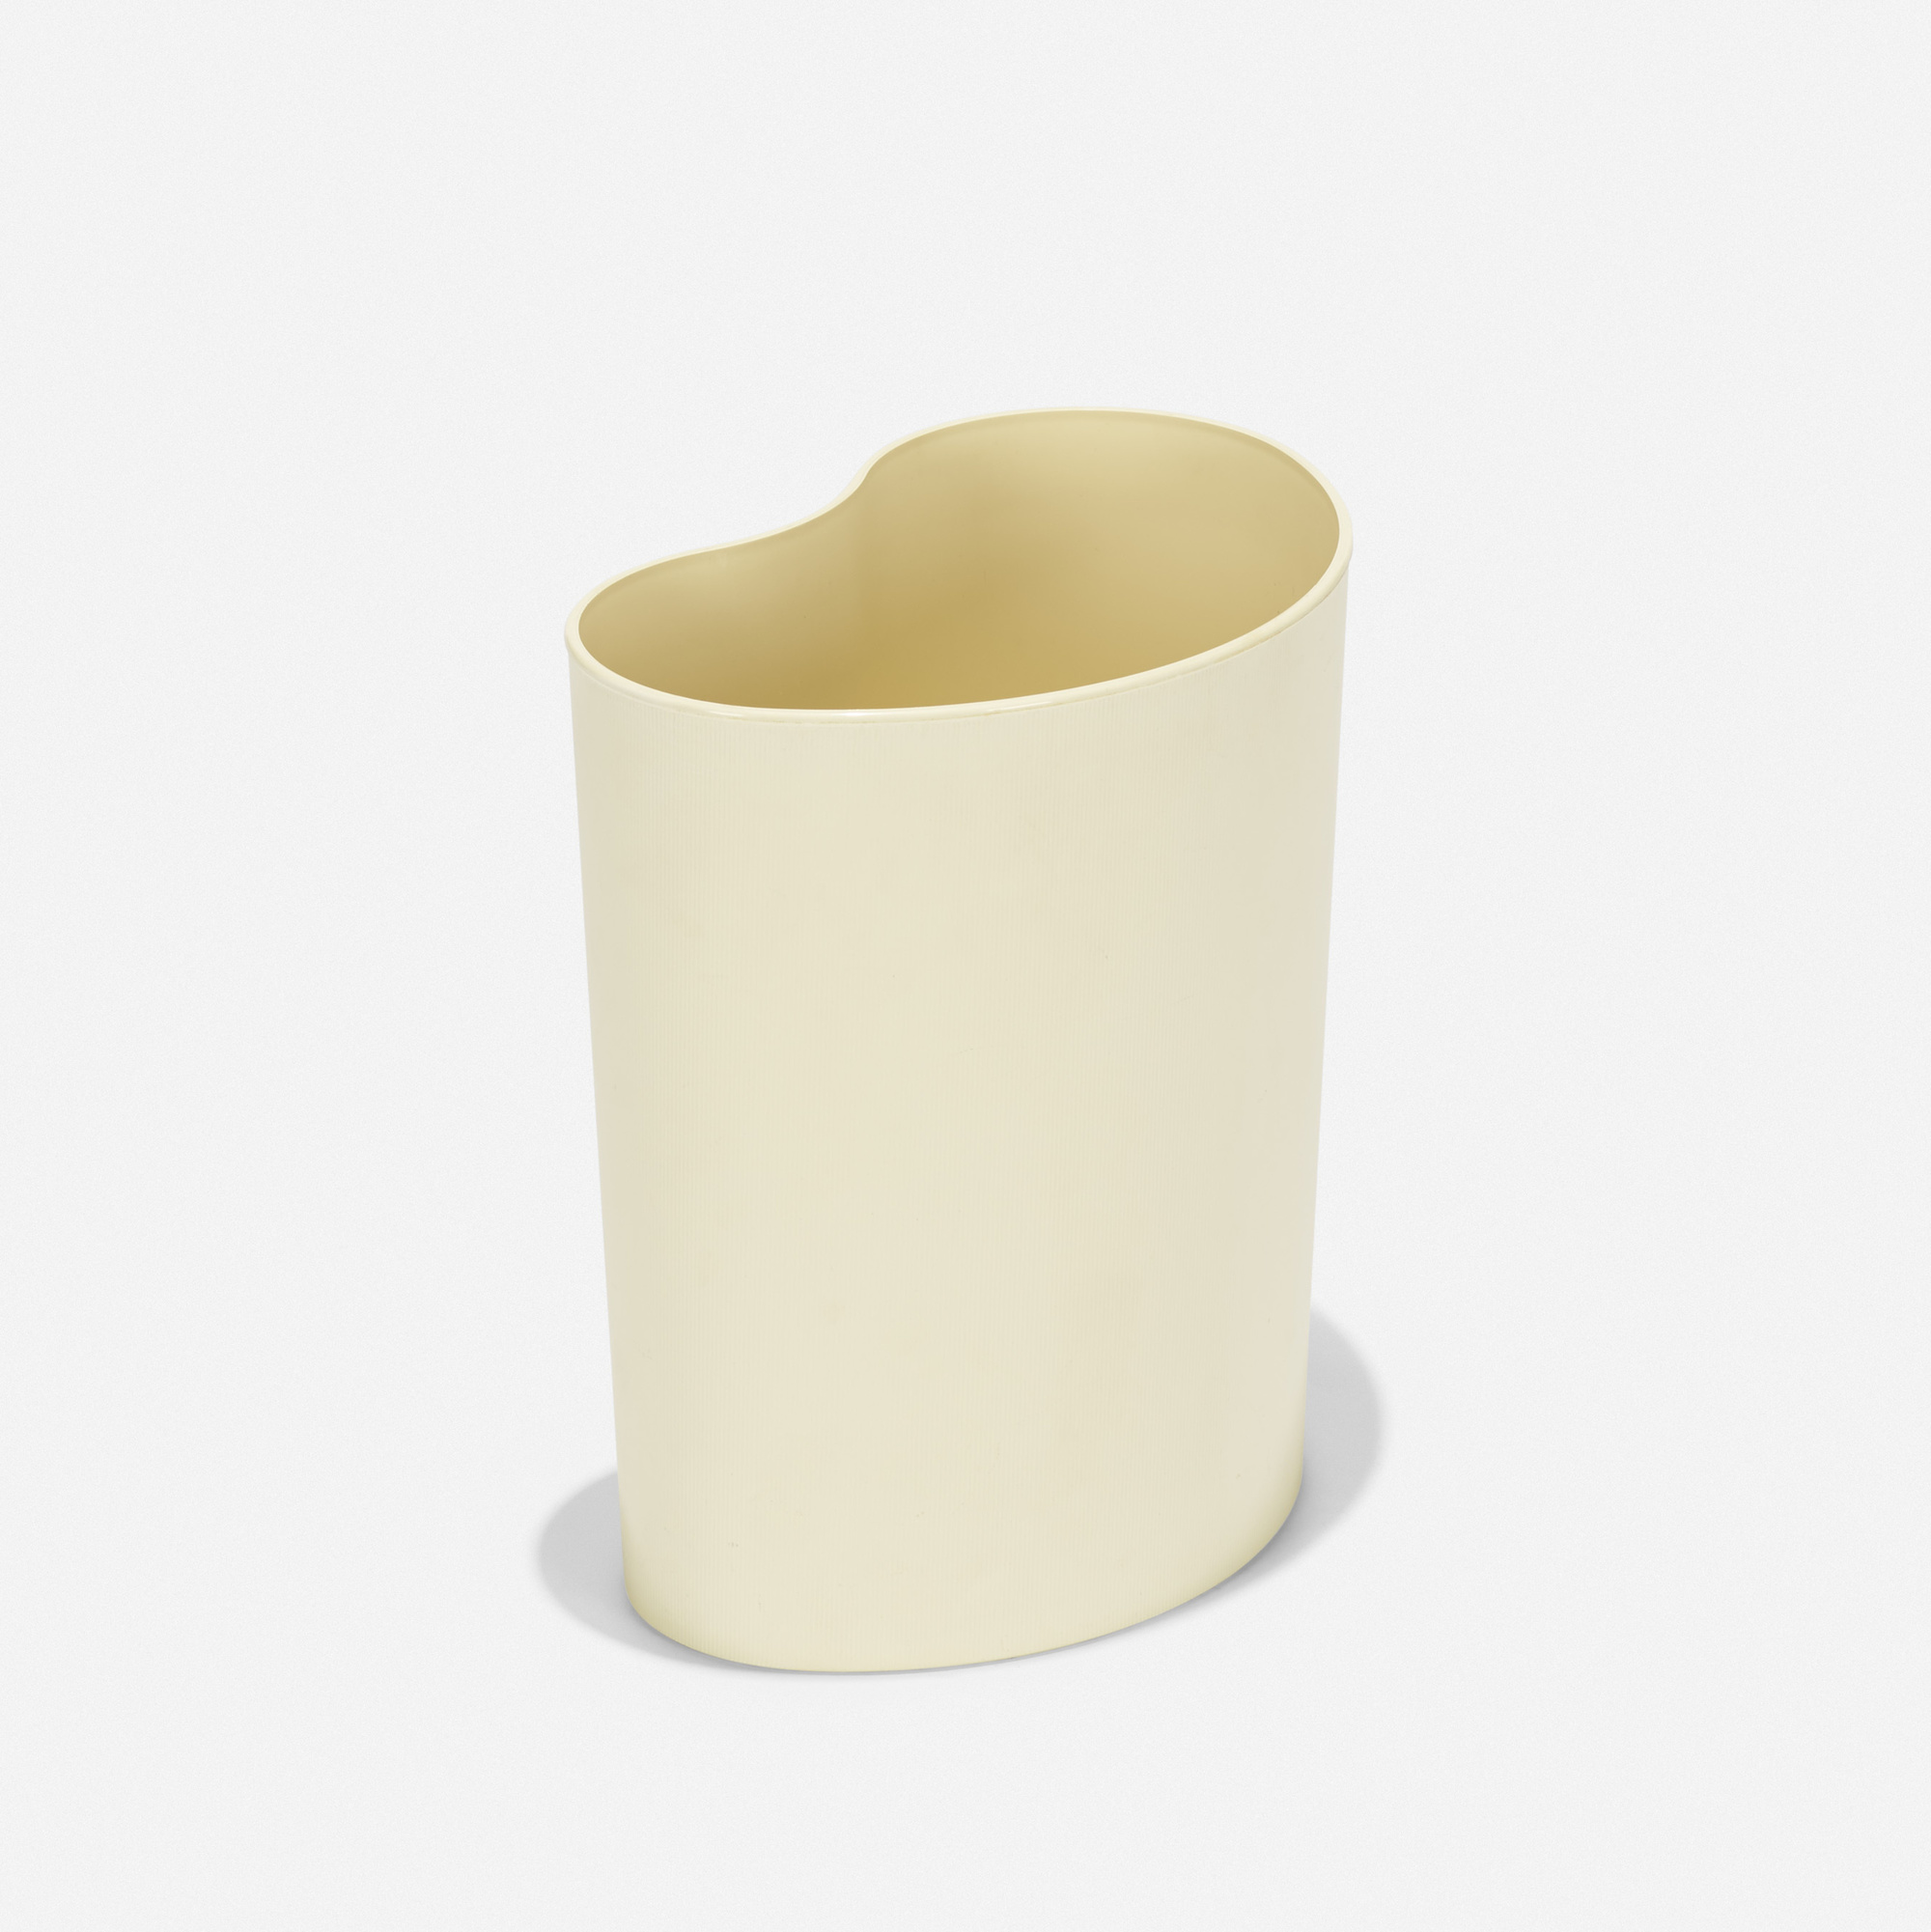 203: Enzo Mari / Chio wastepaper basket (1 of 2)